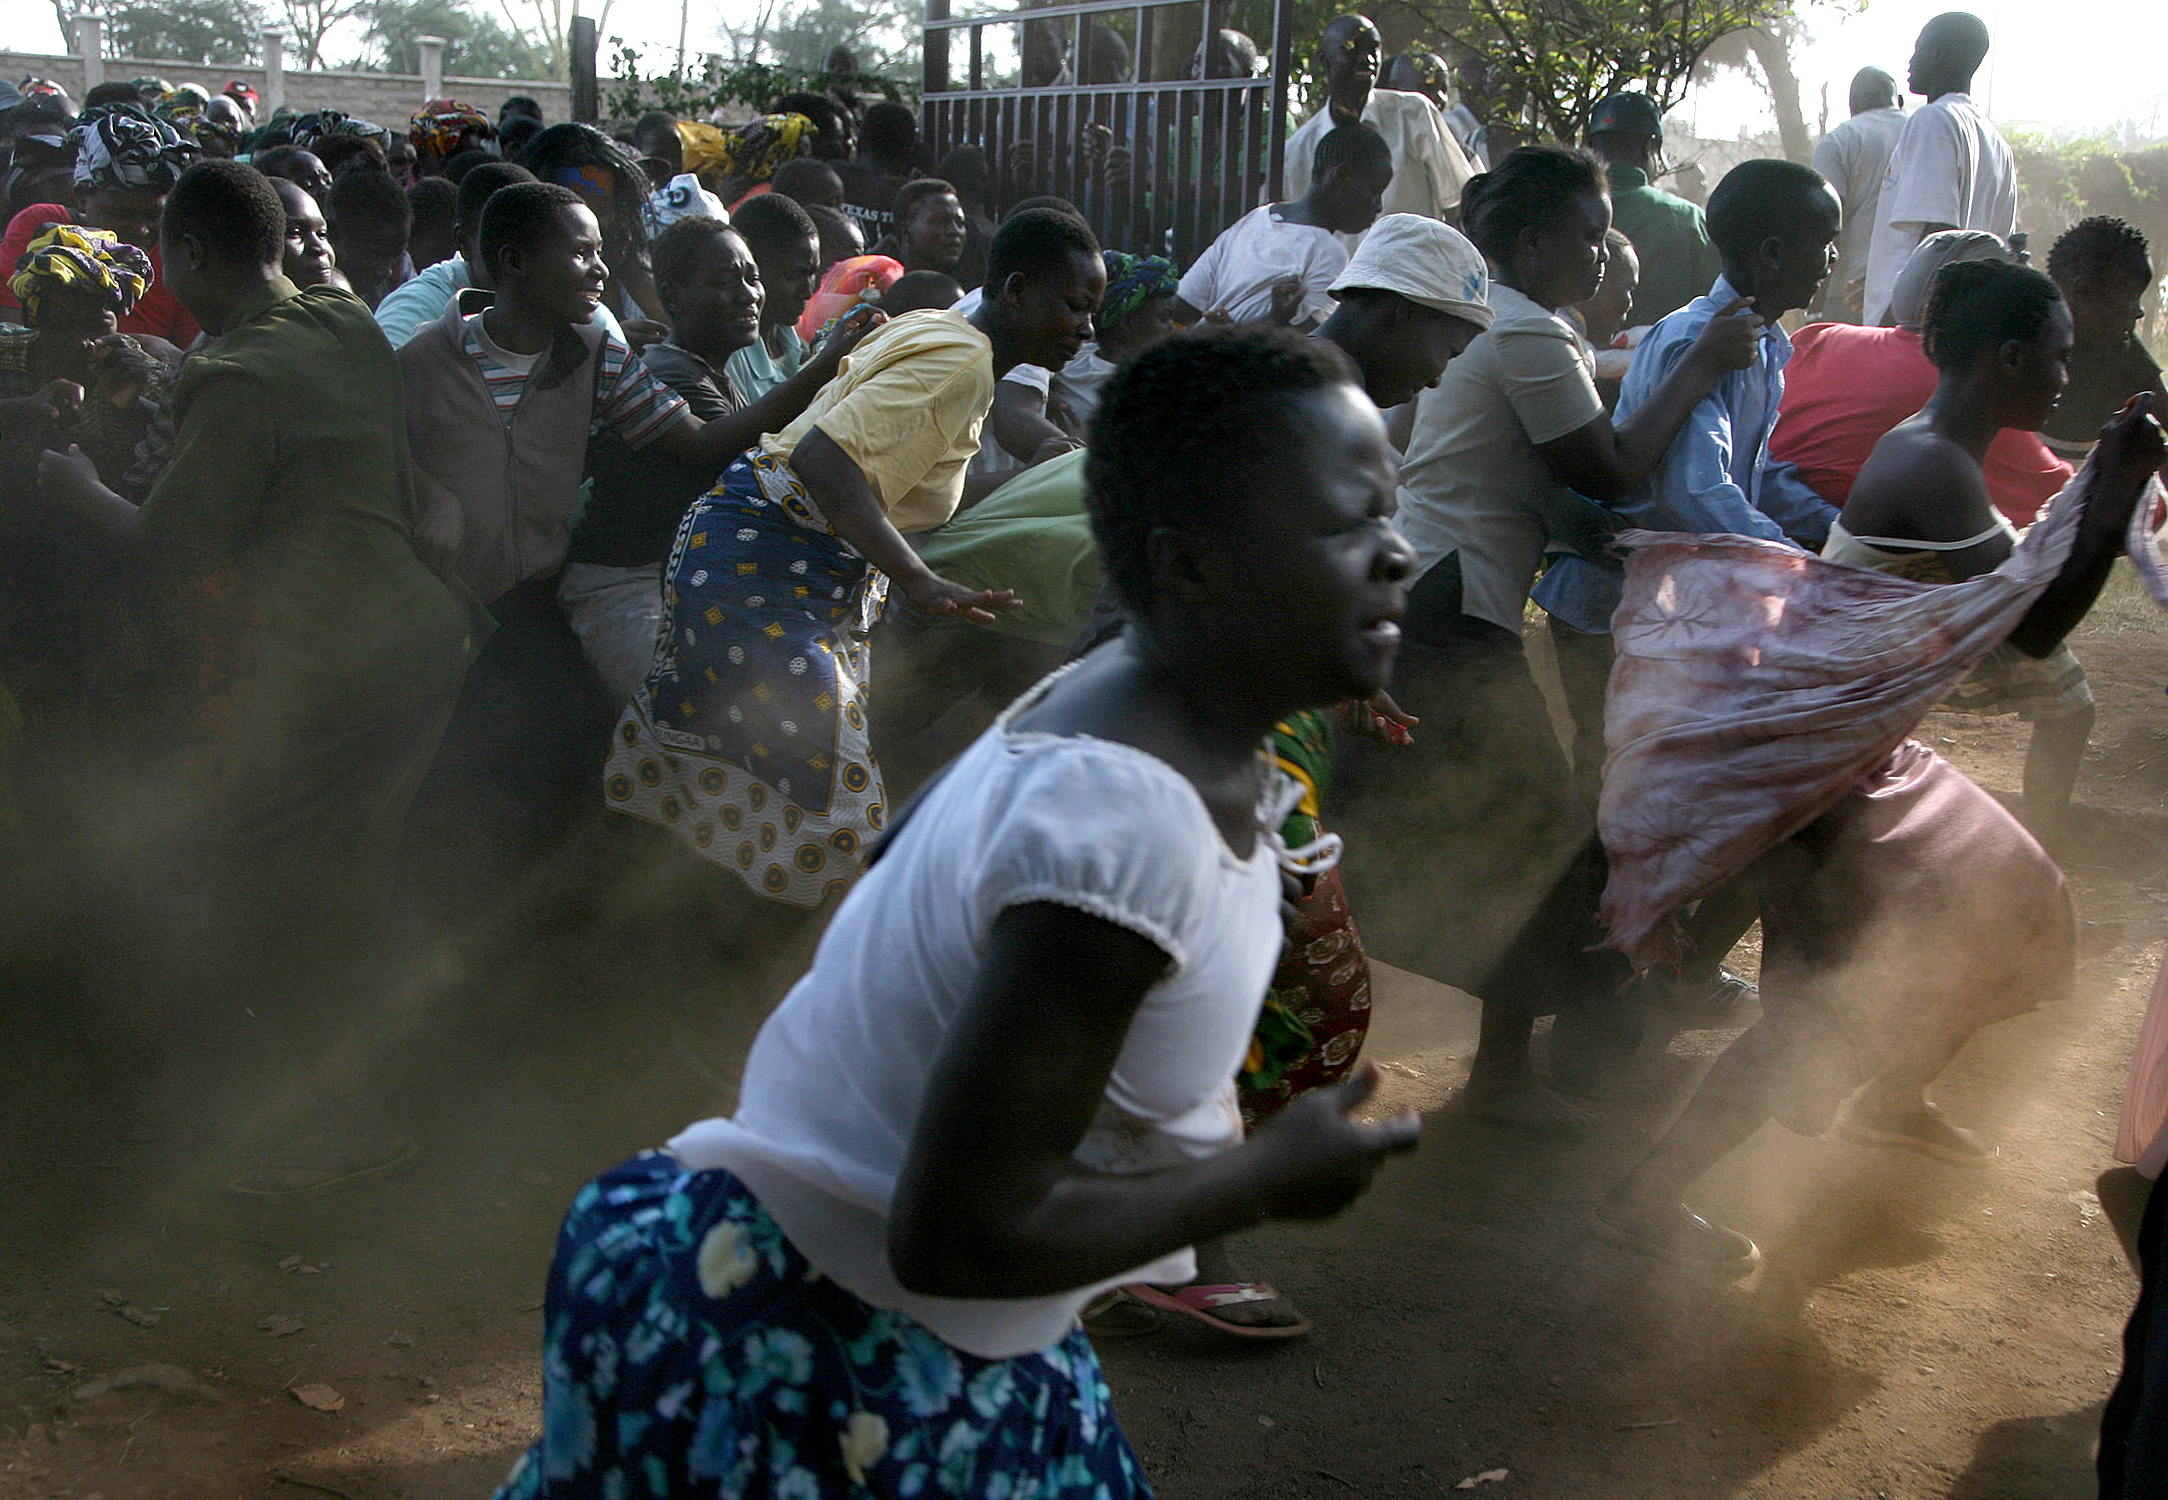 Desperate residents of Mathare break through the fence at the area chief's office and make a dash towards food stocks being handed out during a food distribution by the Kenyan Red Cross. They were chased back by police with whips.